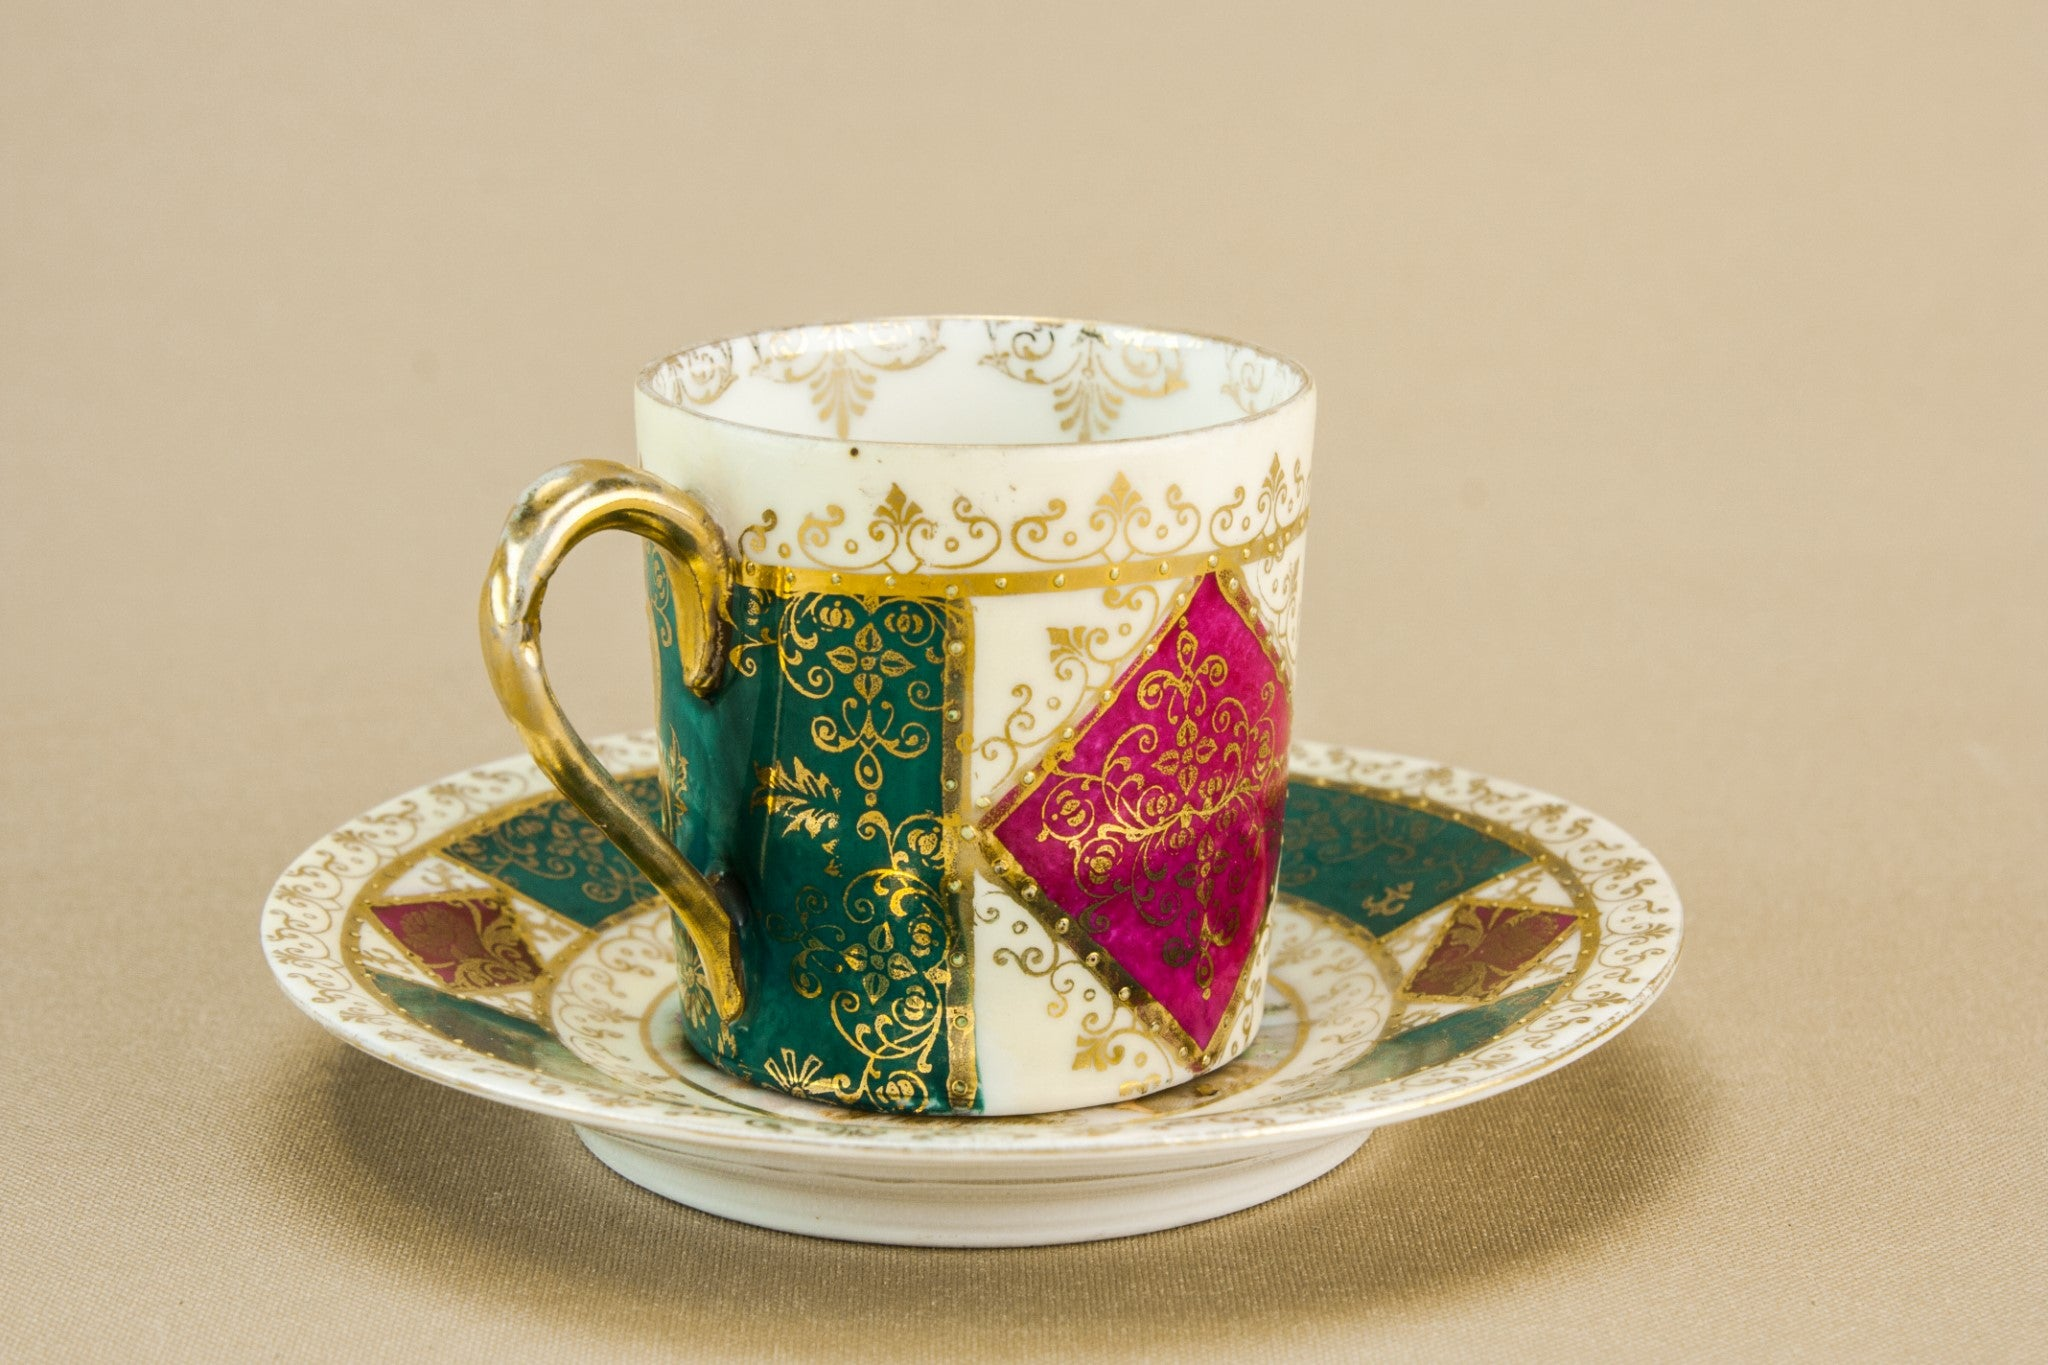 Espress0 coffee cup & saucer